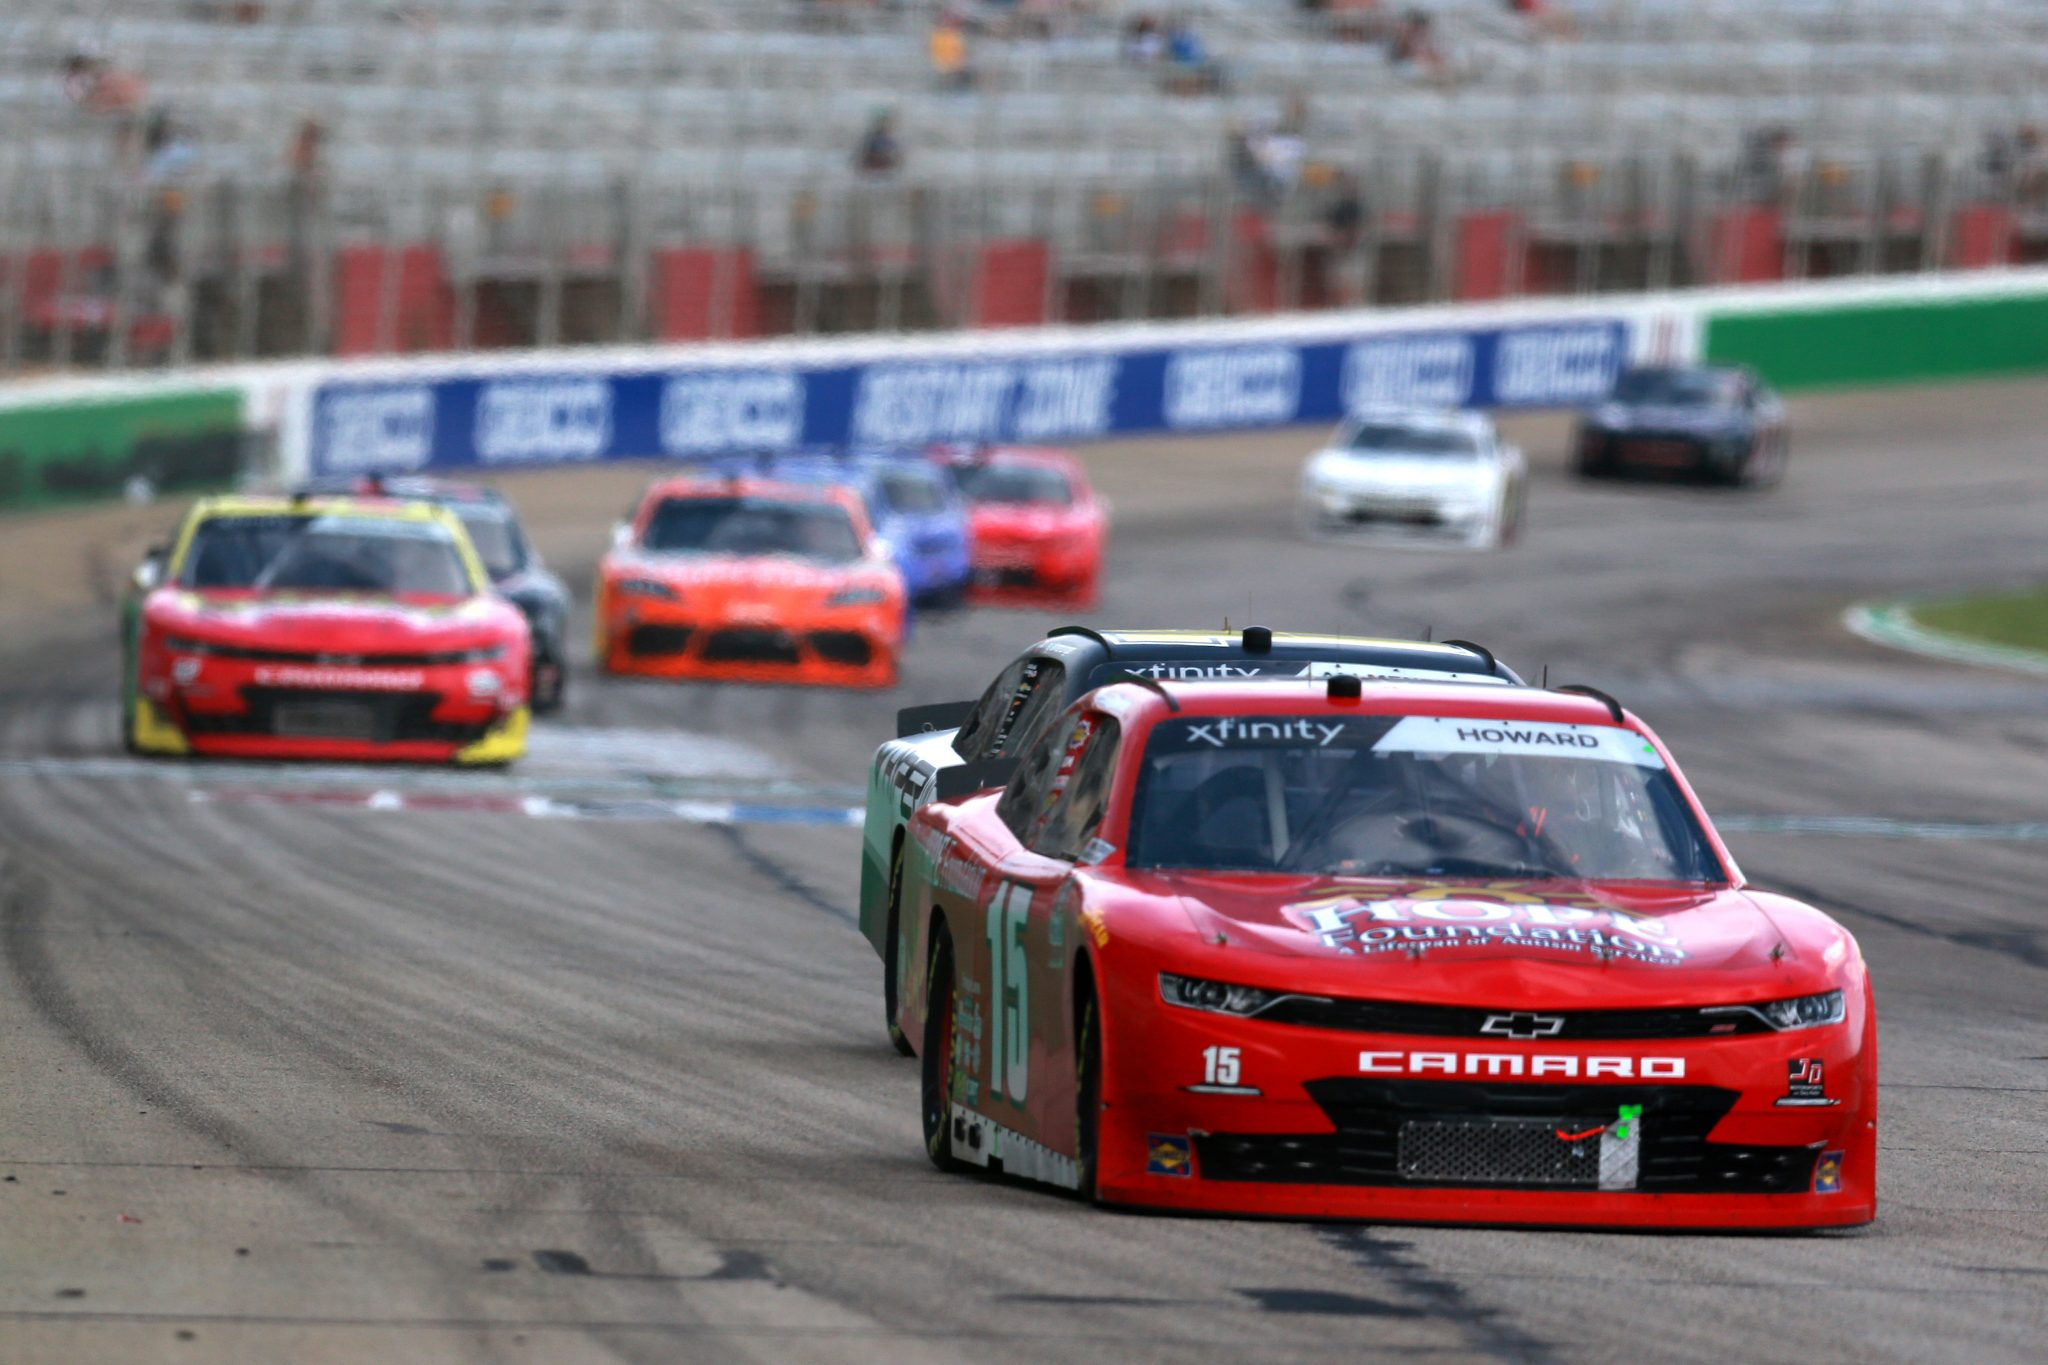 HAMPTON, GEORGIA - JULY 10: Colby Howard, driver of the #15 Project Hope Foundation Chevrolet, drives during the NASCAR Xfinity Series Credit Karma Money 250 at Atlanta Motor Speedway on July 10, 2021 in Hampton, Georgia. (Photo by Sean Gardner/Getty Images)   Getty Images